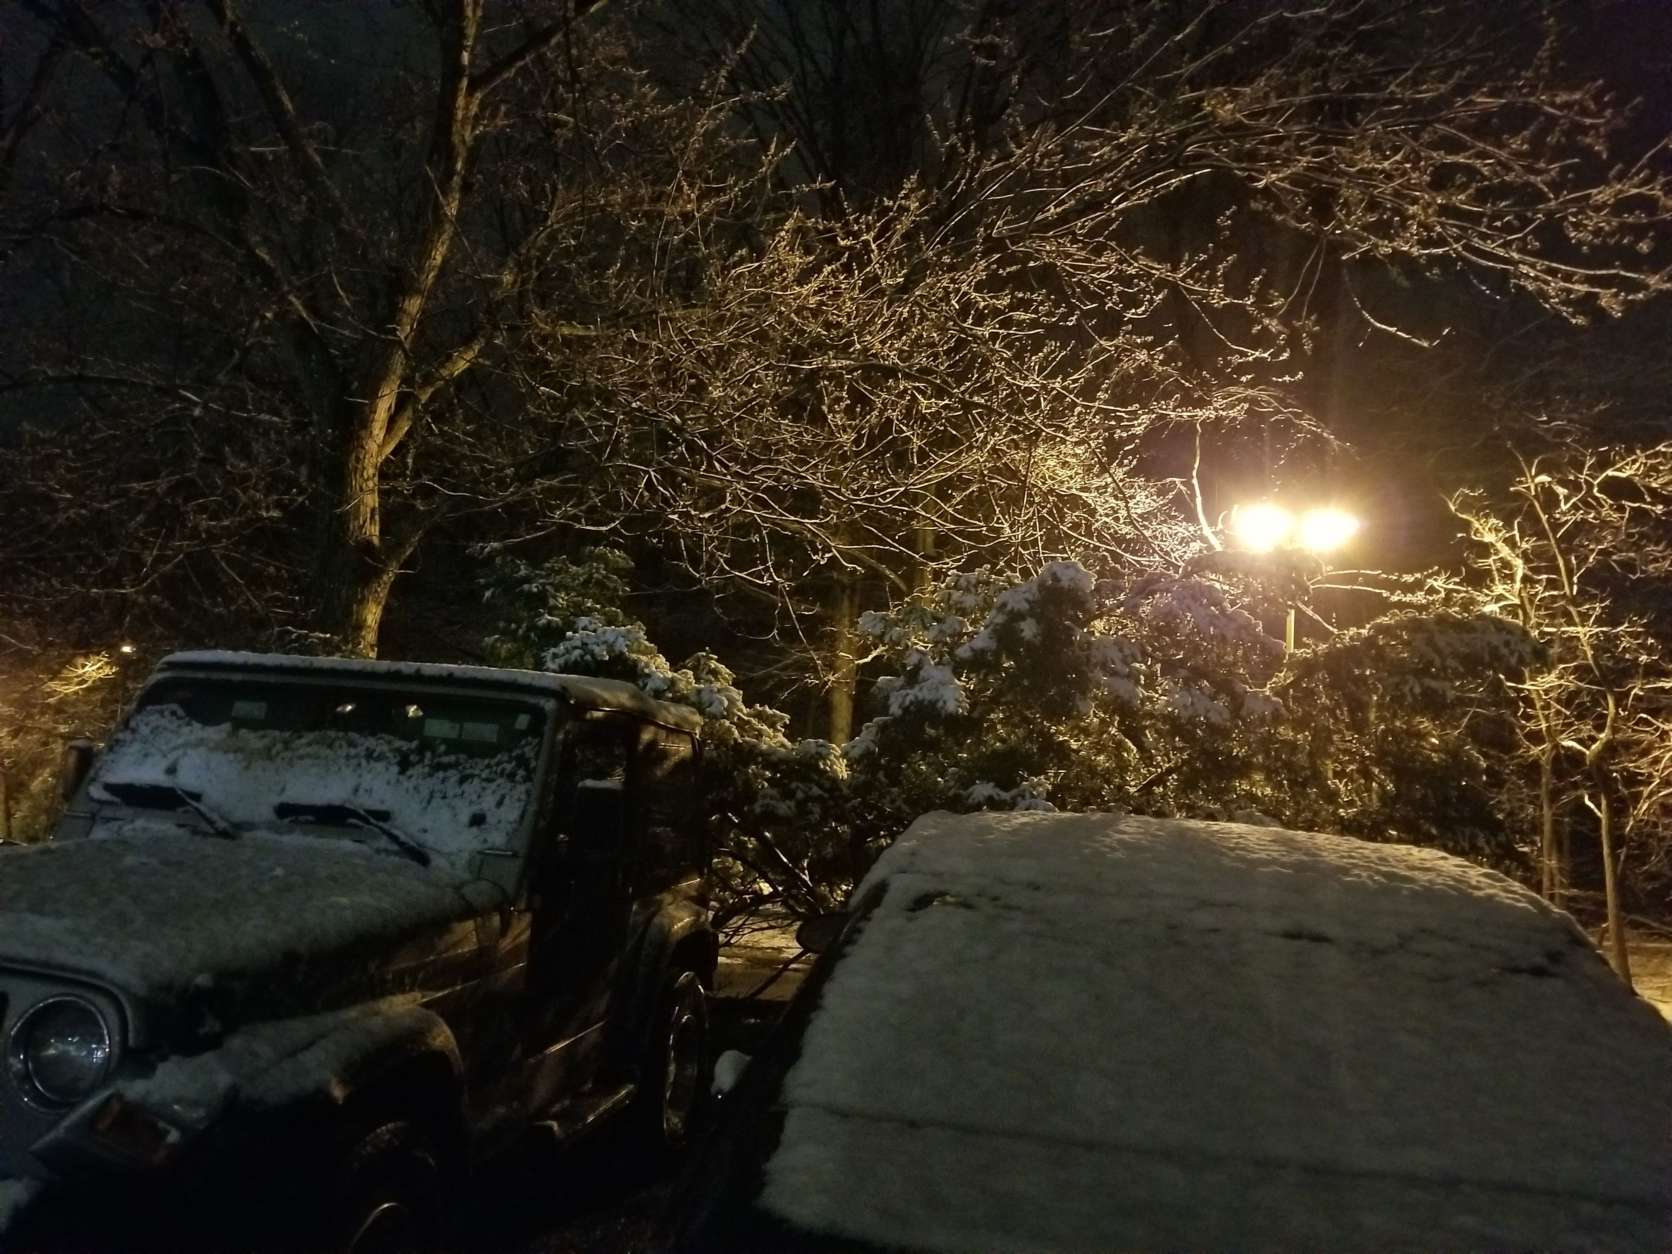 Snow covers cars in College Park, Maryland. (Courtesy Nomie)